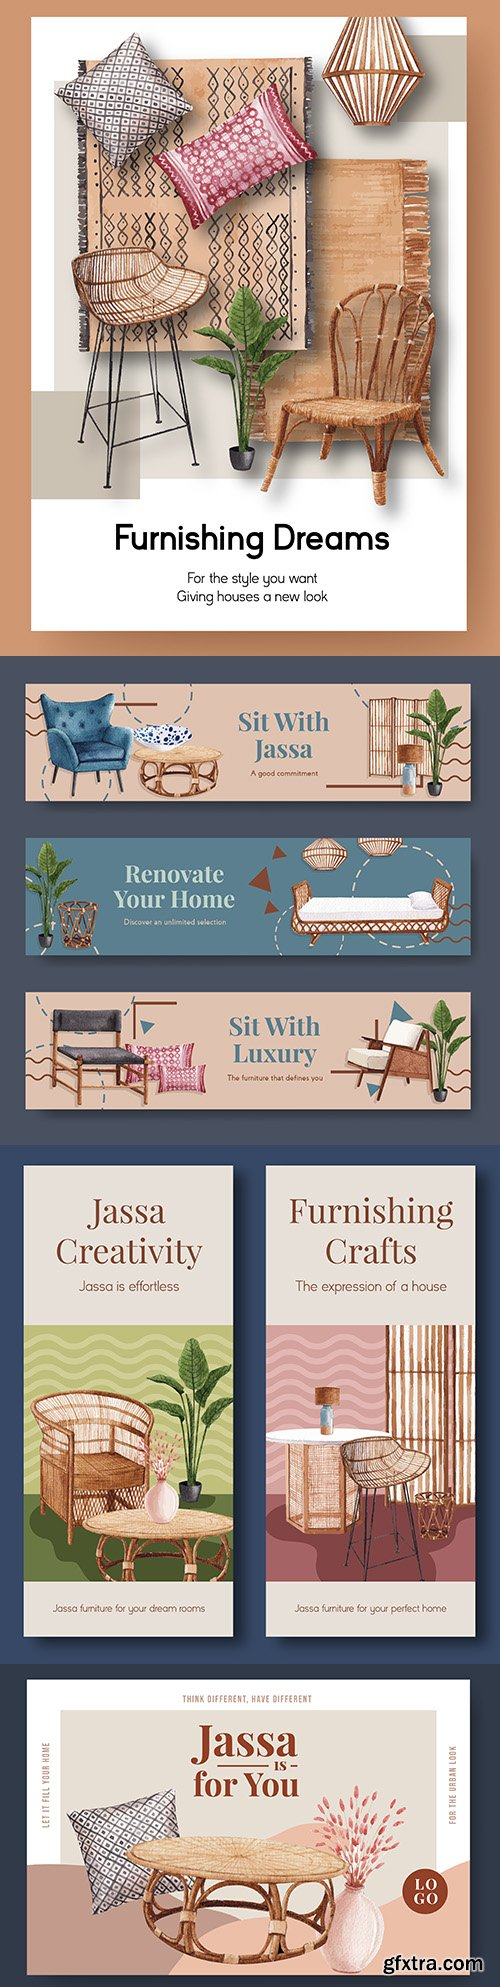 Furniture jassa for brochure and advertising watercolor illustrations